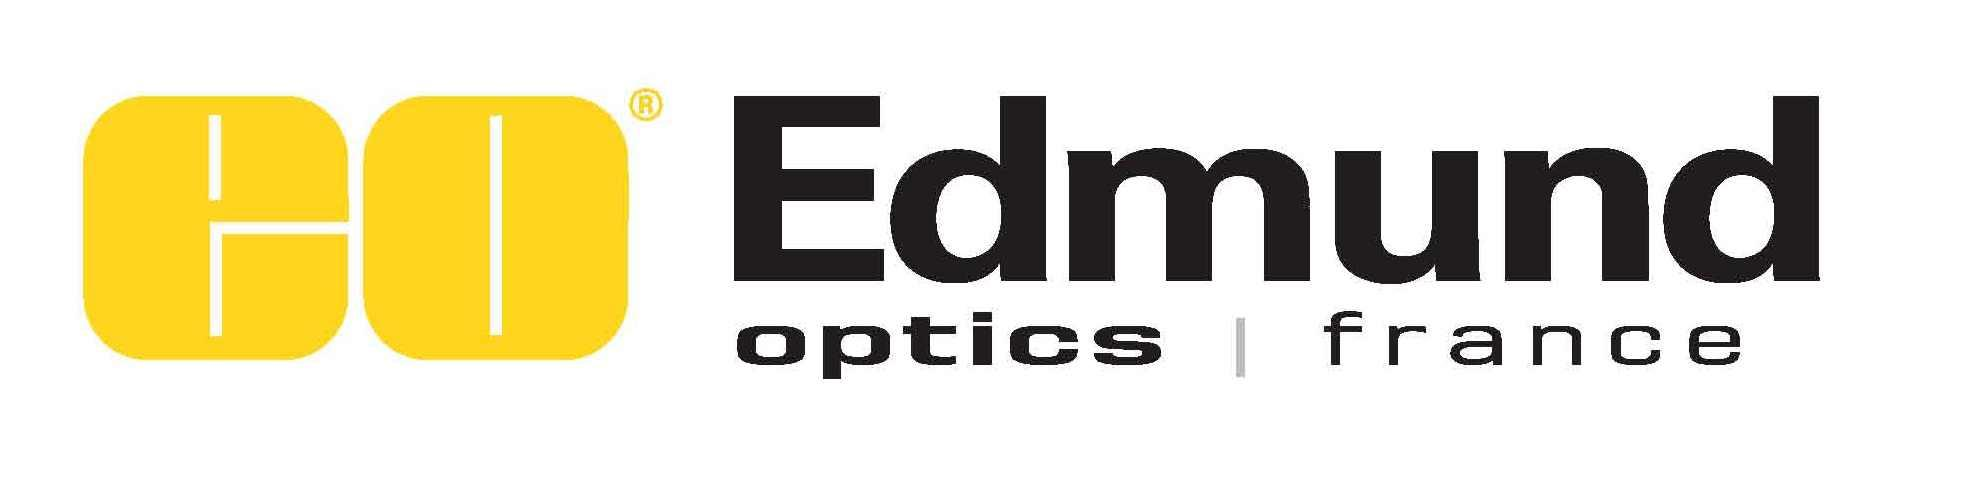 EDMUND OPTICS FRANCE